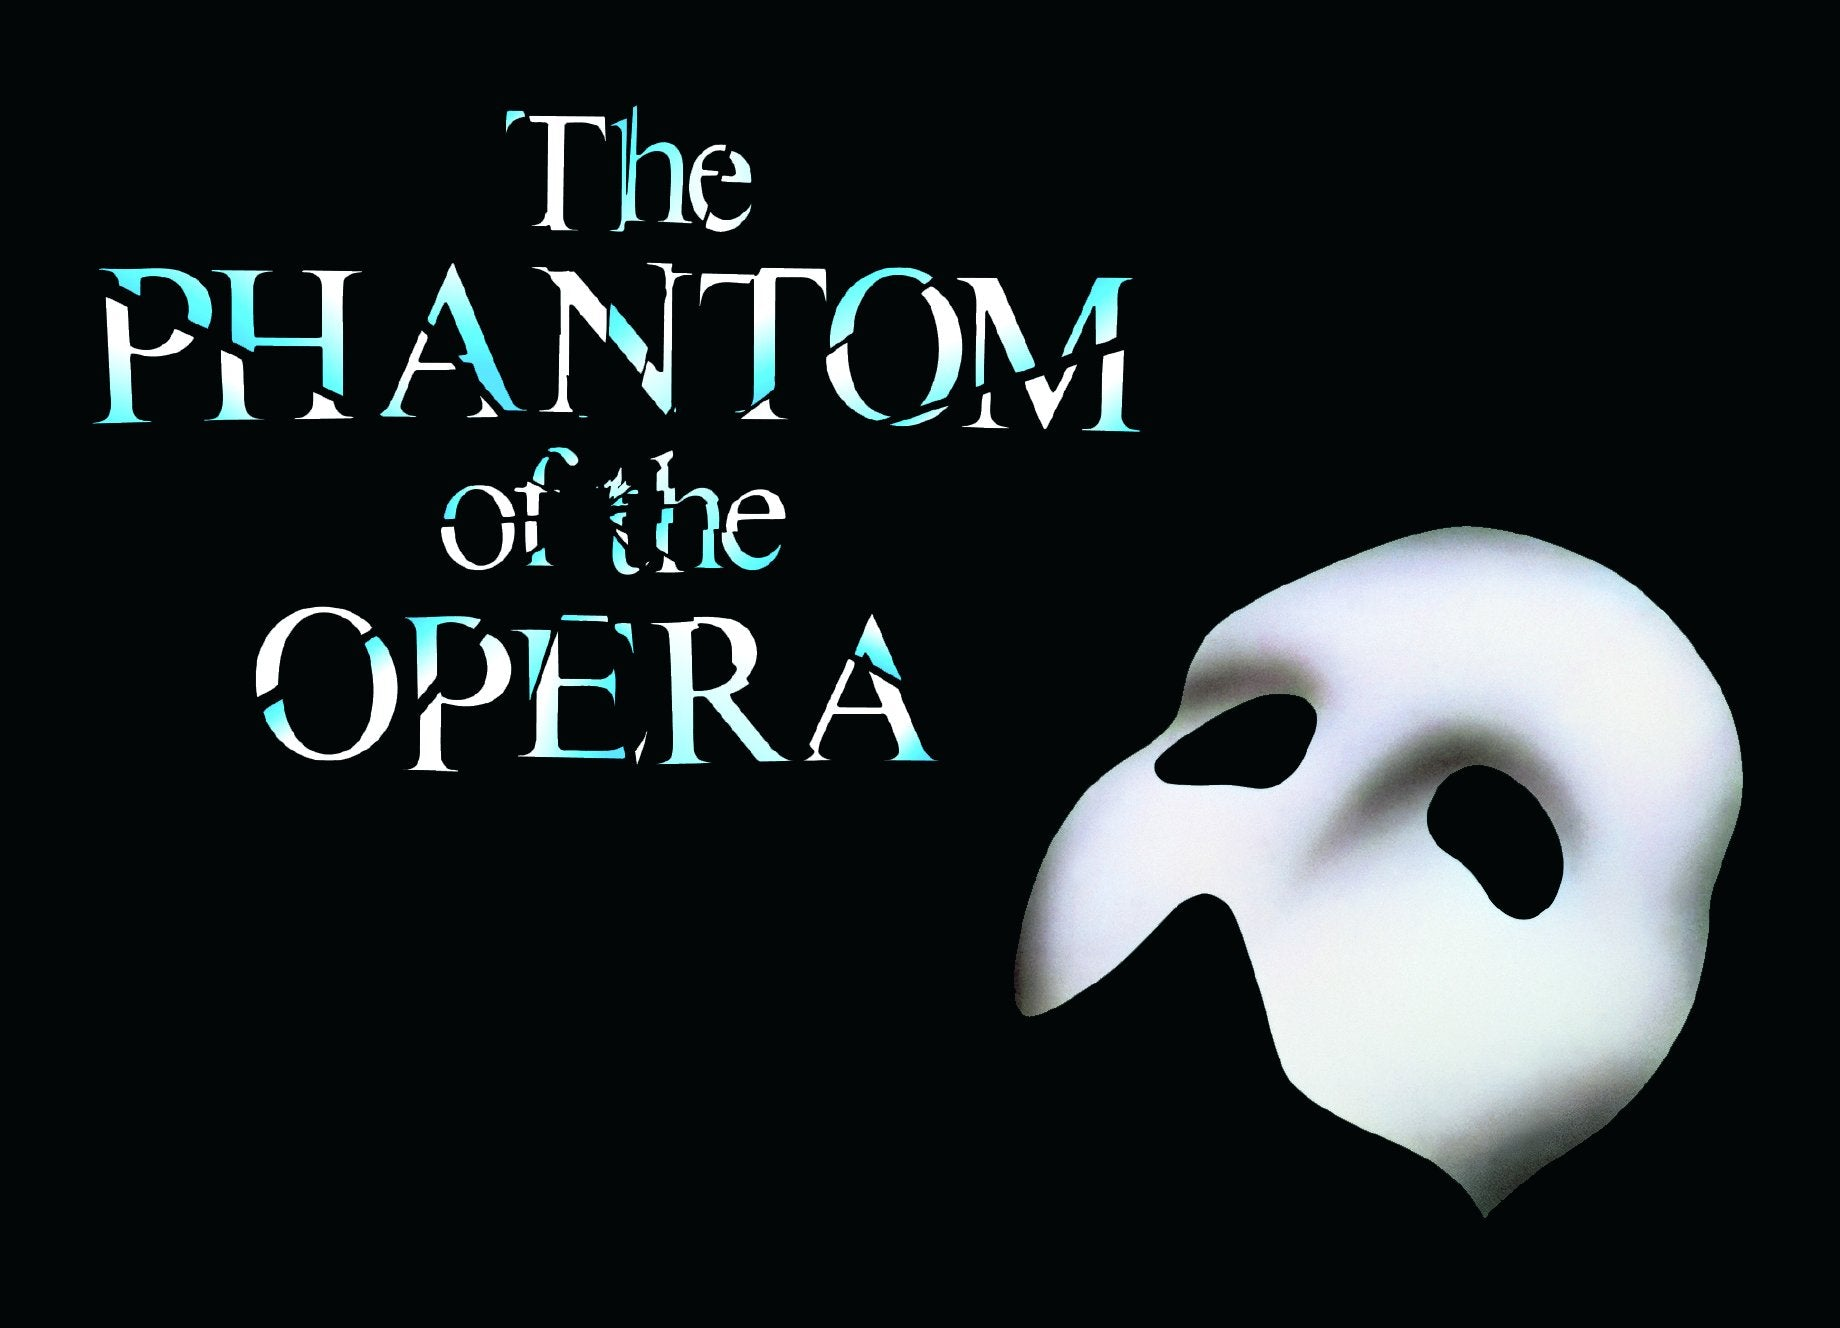 The Phantom of the Opera - Theatre, Dinner and 5* Hotel (2 nights 27th-29th Oct 17) - Front Row Events